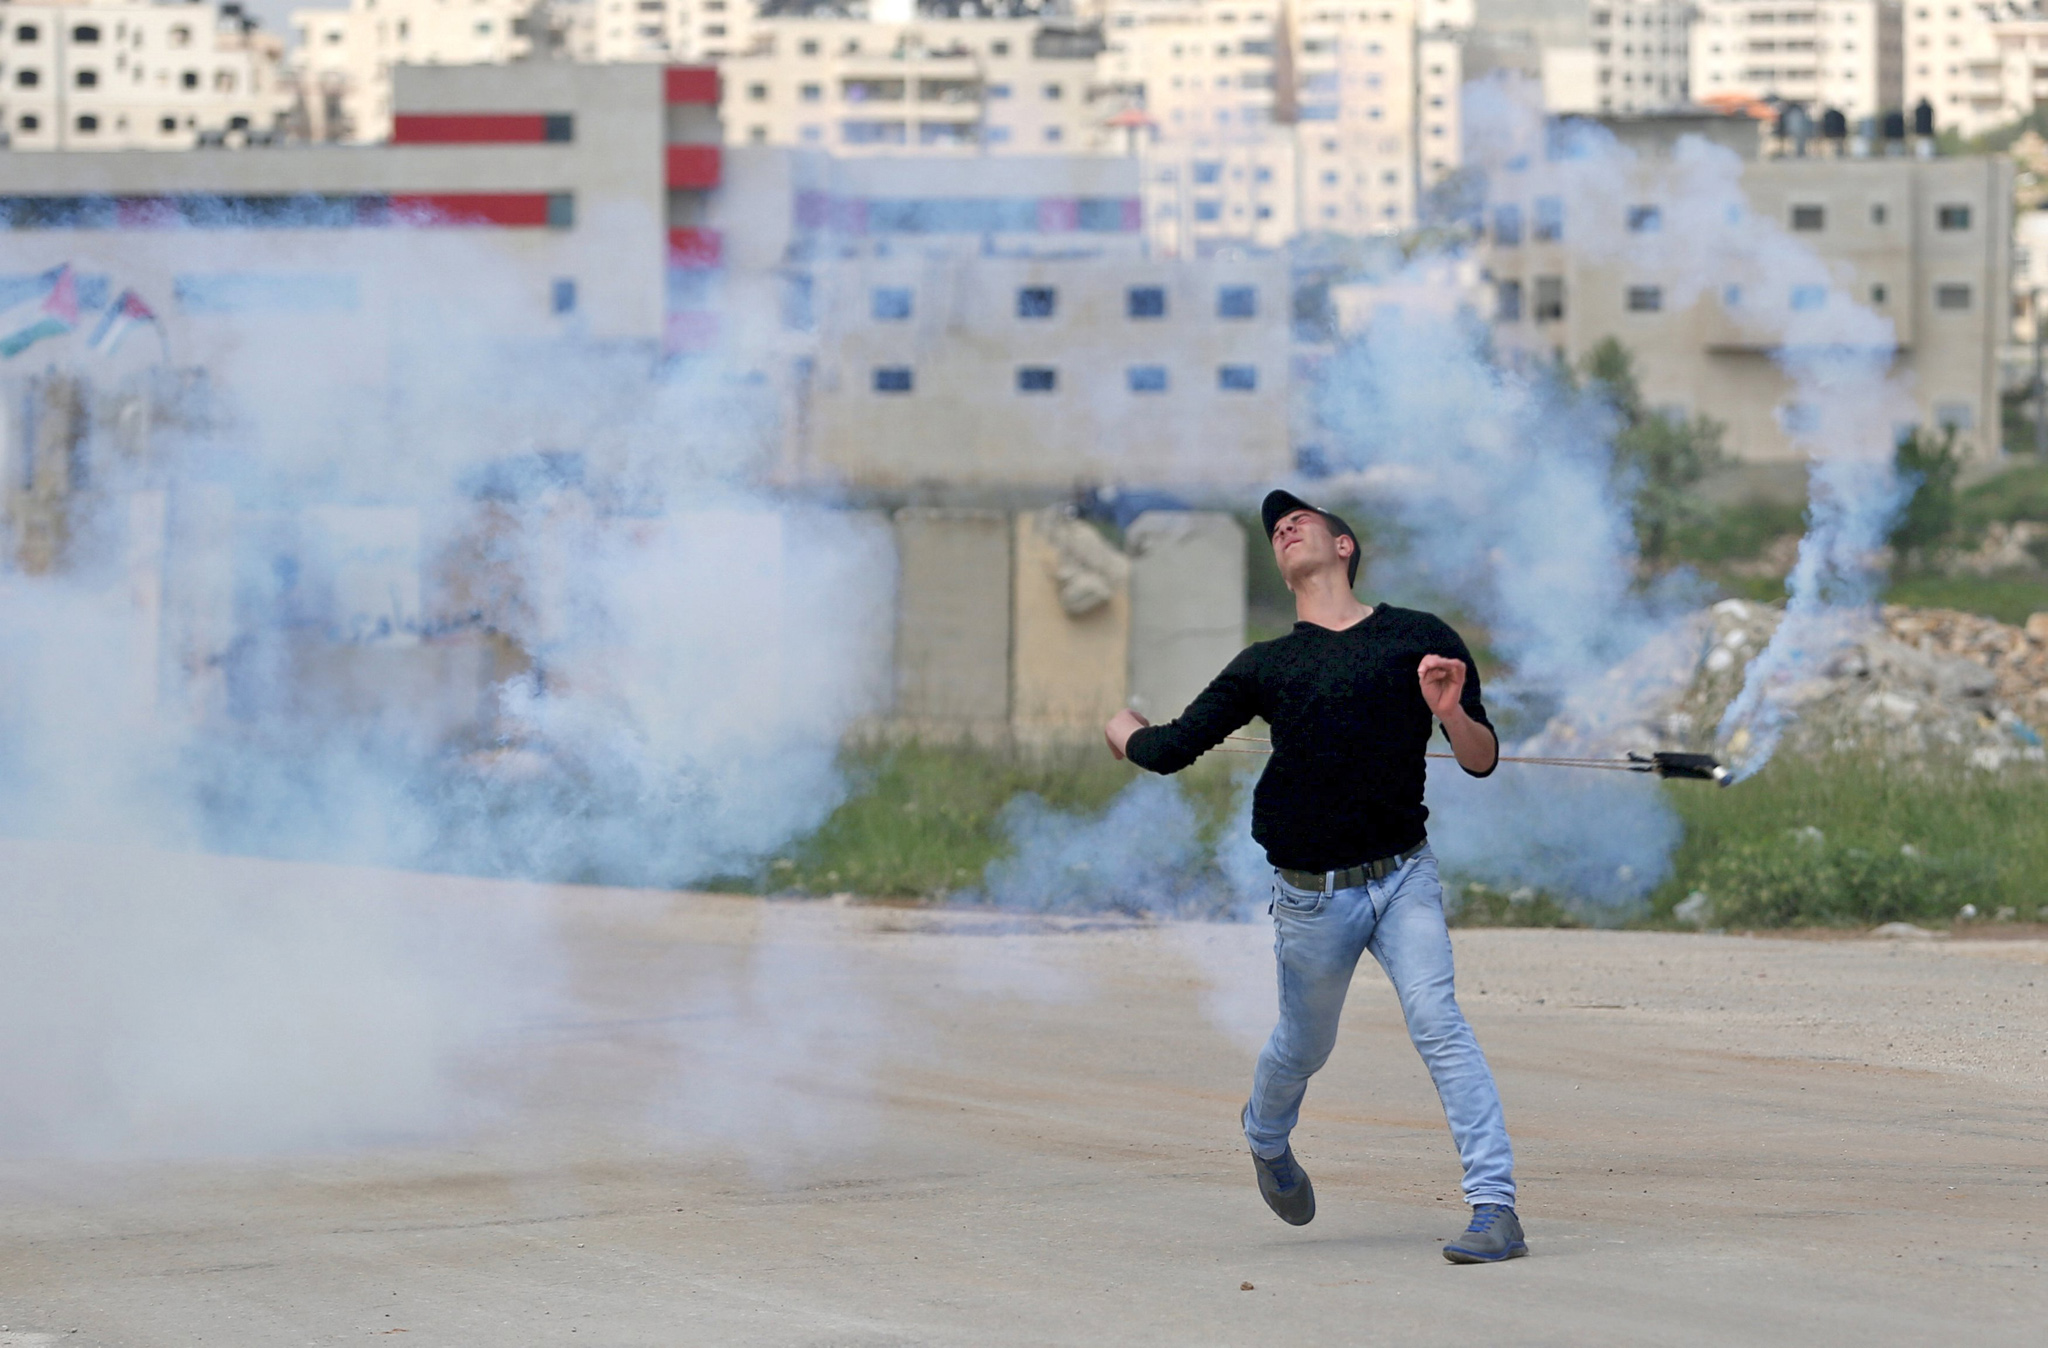 A Palestinian protester uses a sling to return a tear gas canister fired by Israeli troops during clashes at a protest marking Land Day, near Israel's Ofer Prison near the West Bank city of Ramallah March 30, 2016. March 30 marks Land Day, the annual commemoration of protests in 1976 against Israel's appropriation of Arab-owned land in the Galilee